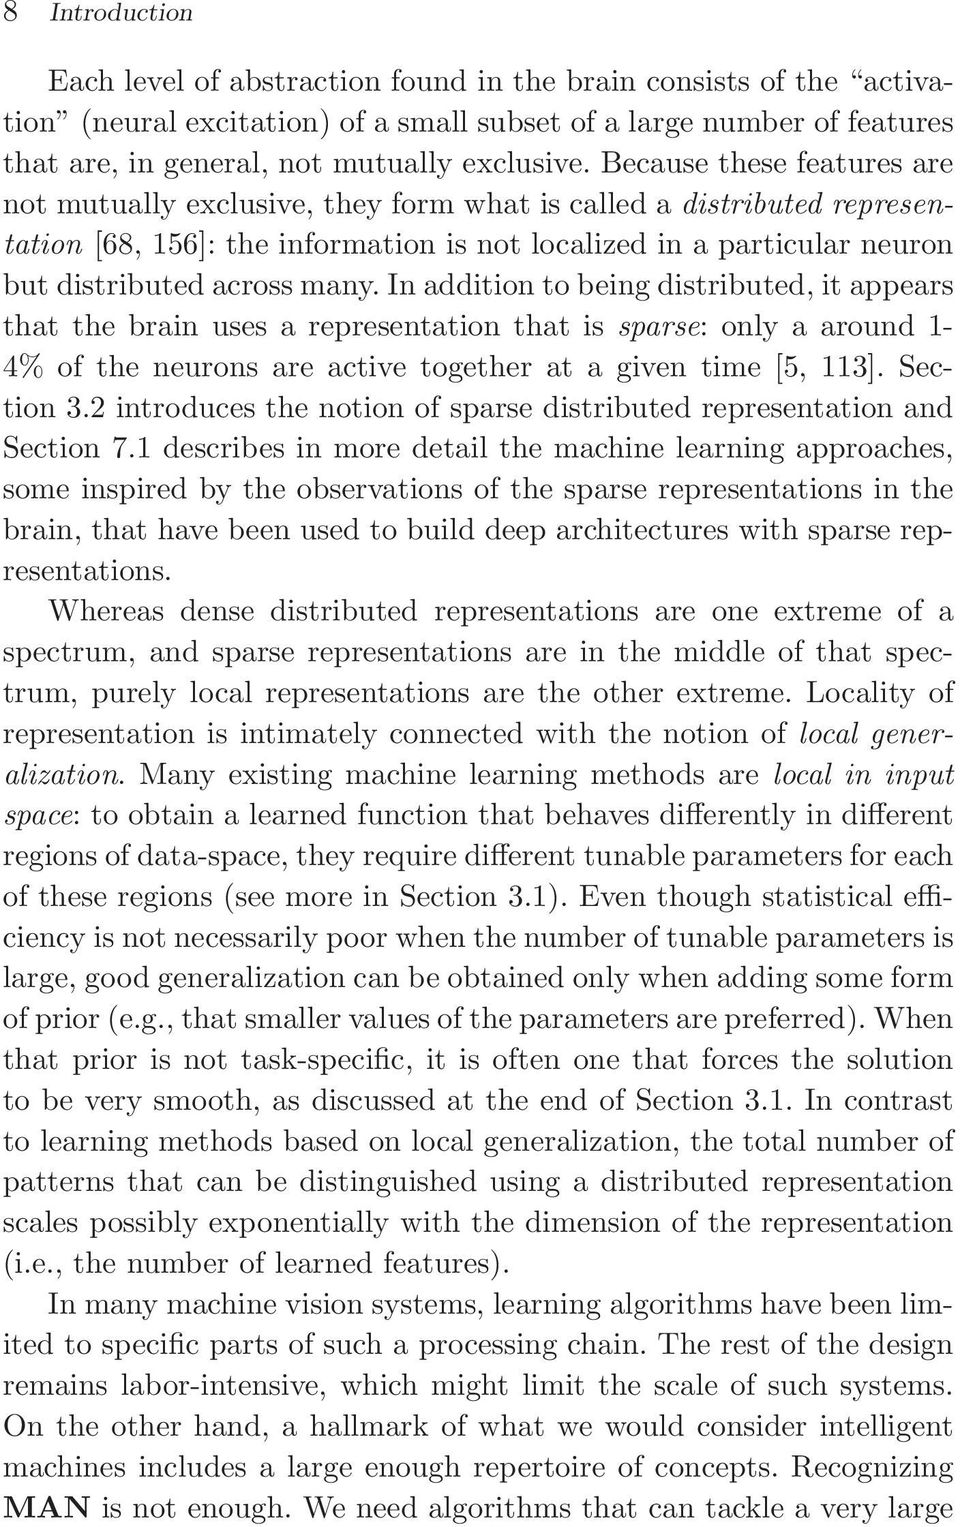 In addition to being distributed, it appears that the brain uses a representation that is sparse: only a around 1-4% of the neurons are active together at a given time [5, 113]. Section 3.